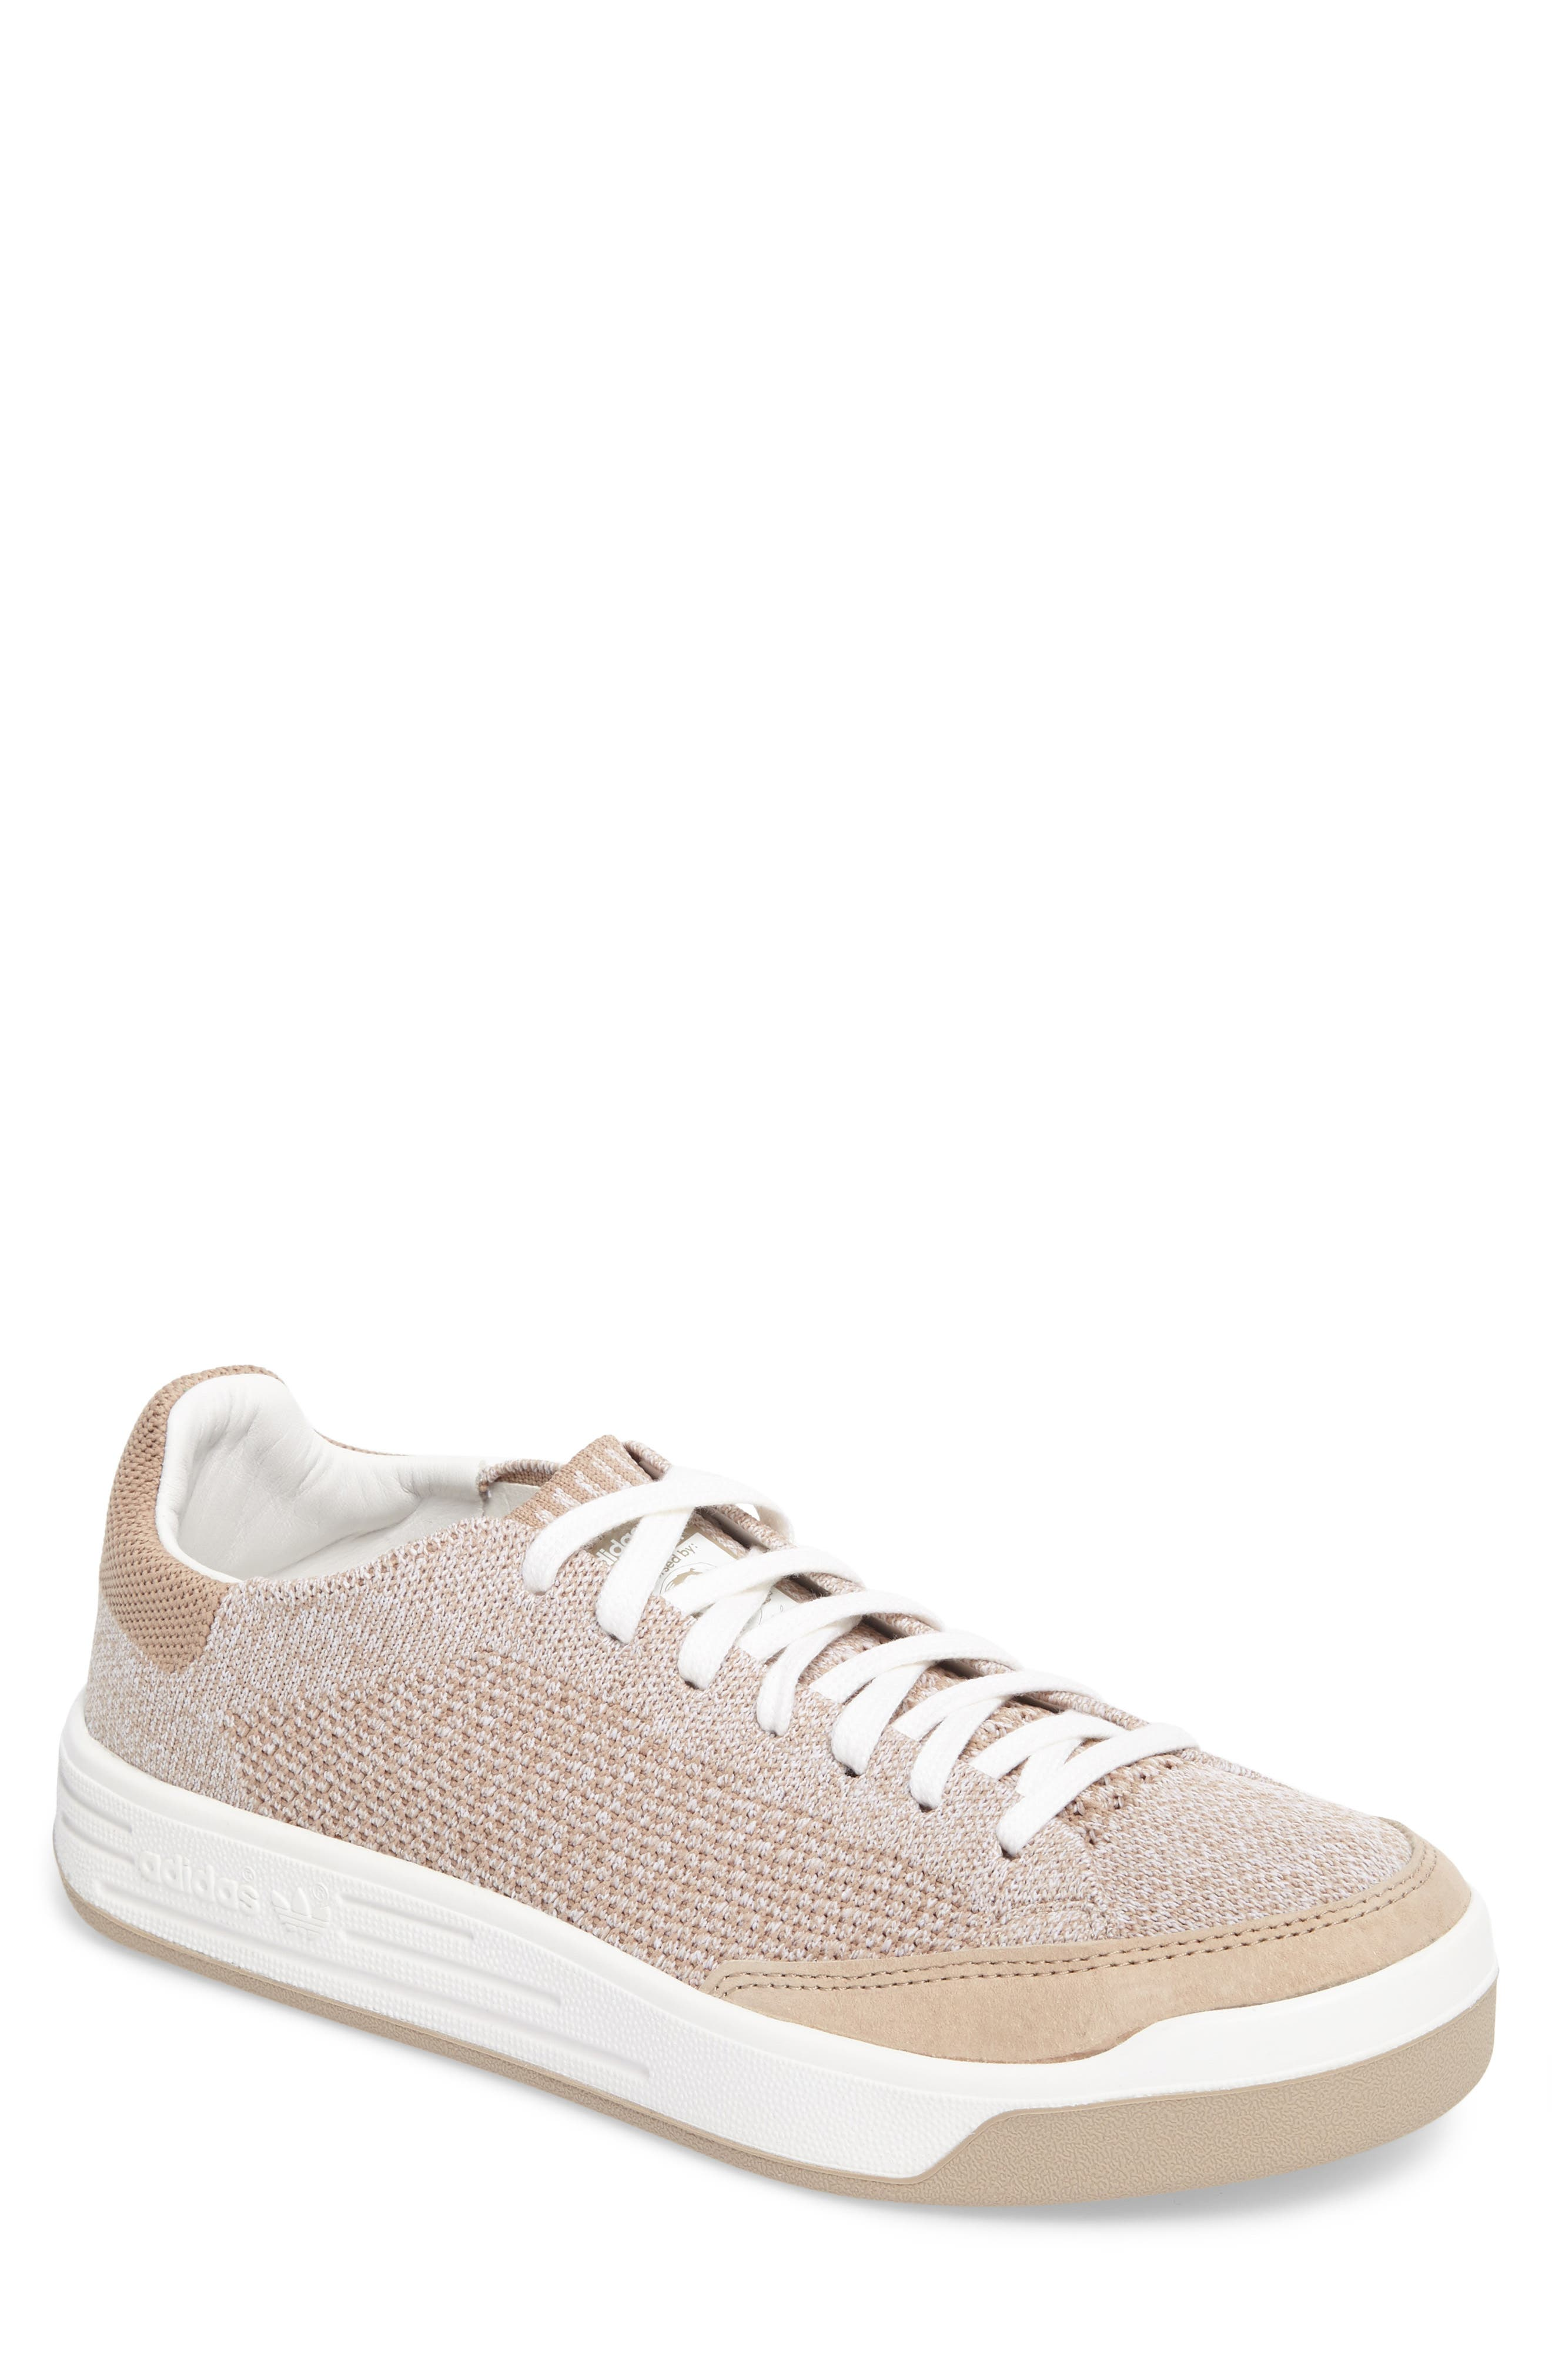 Rod Laver Super Primeknit Sneaker,                         Main,                         color, Khaki/ White/ Crystal White